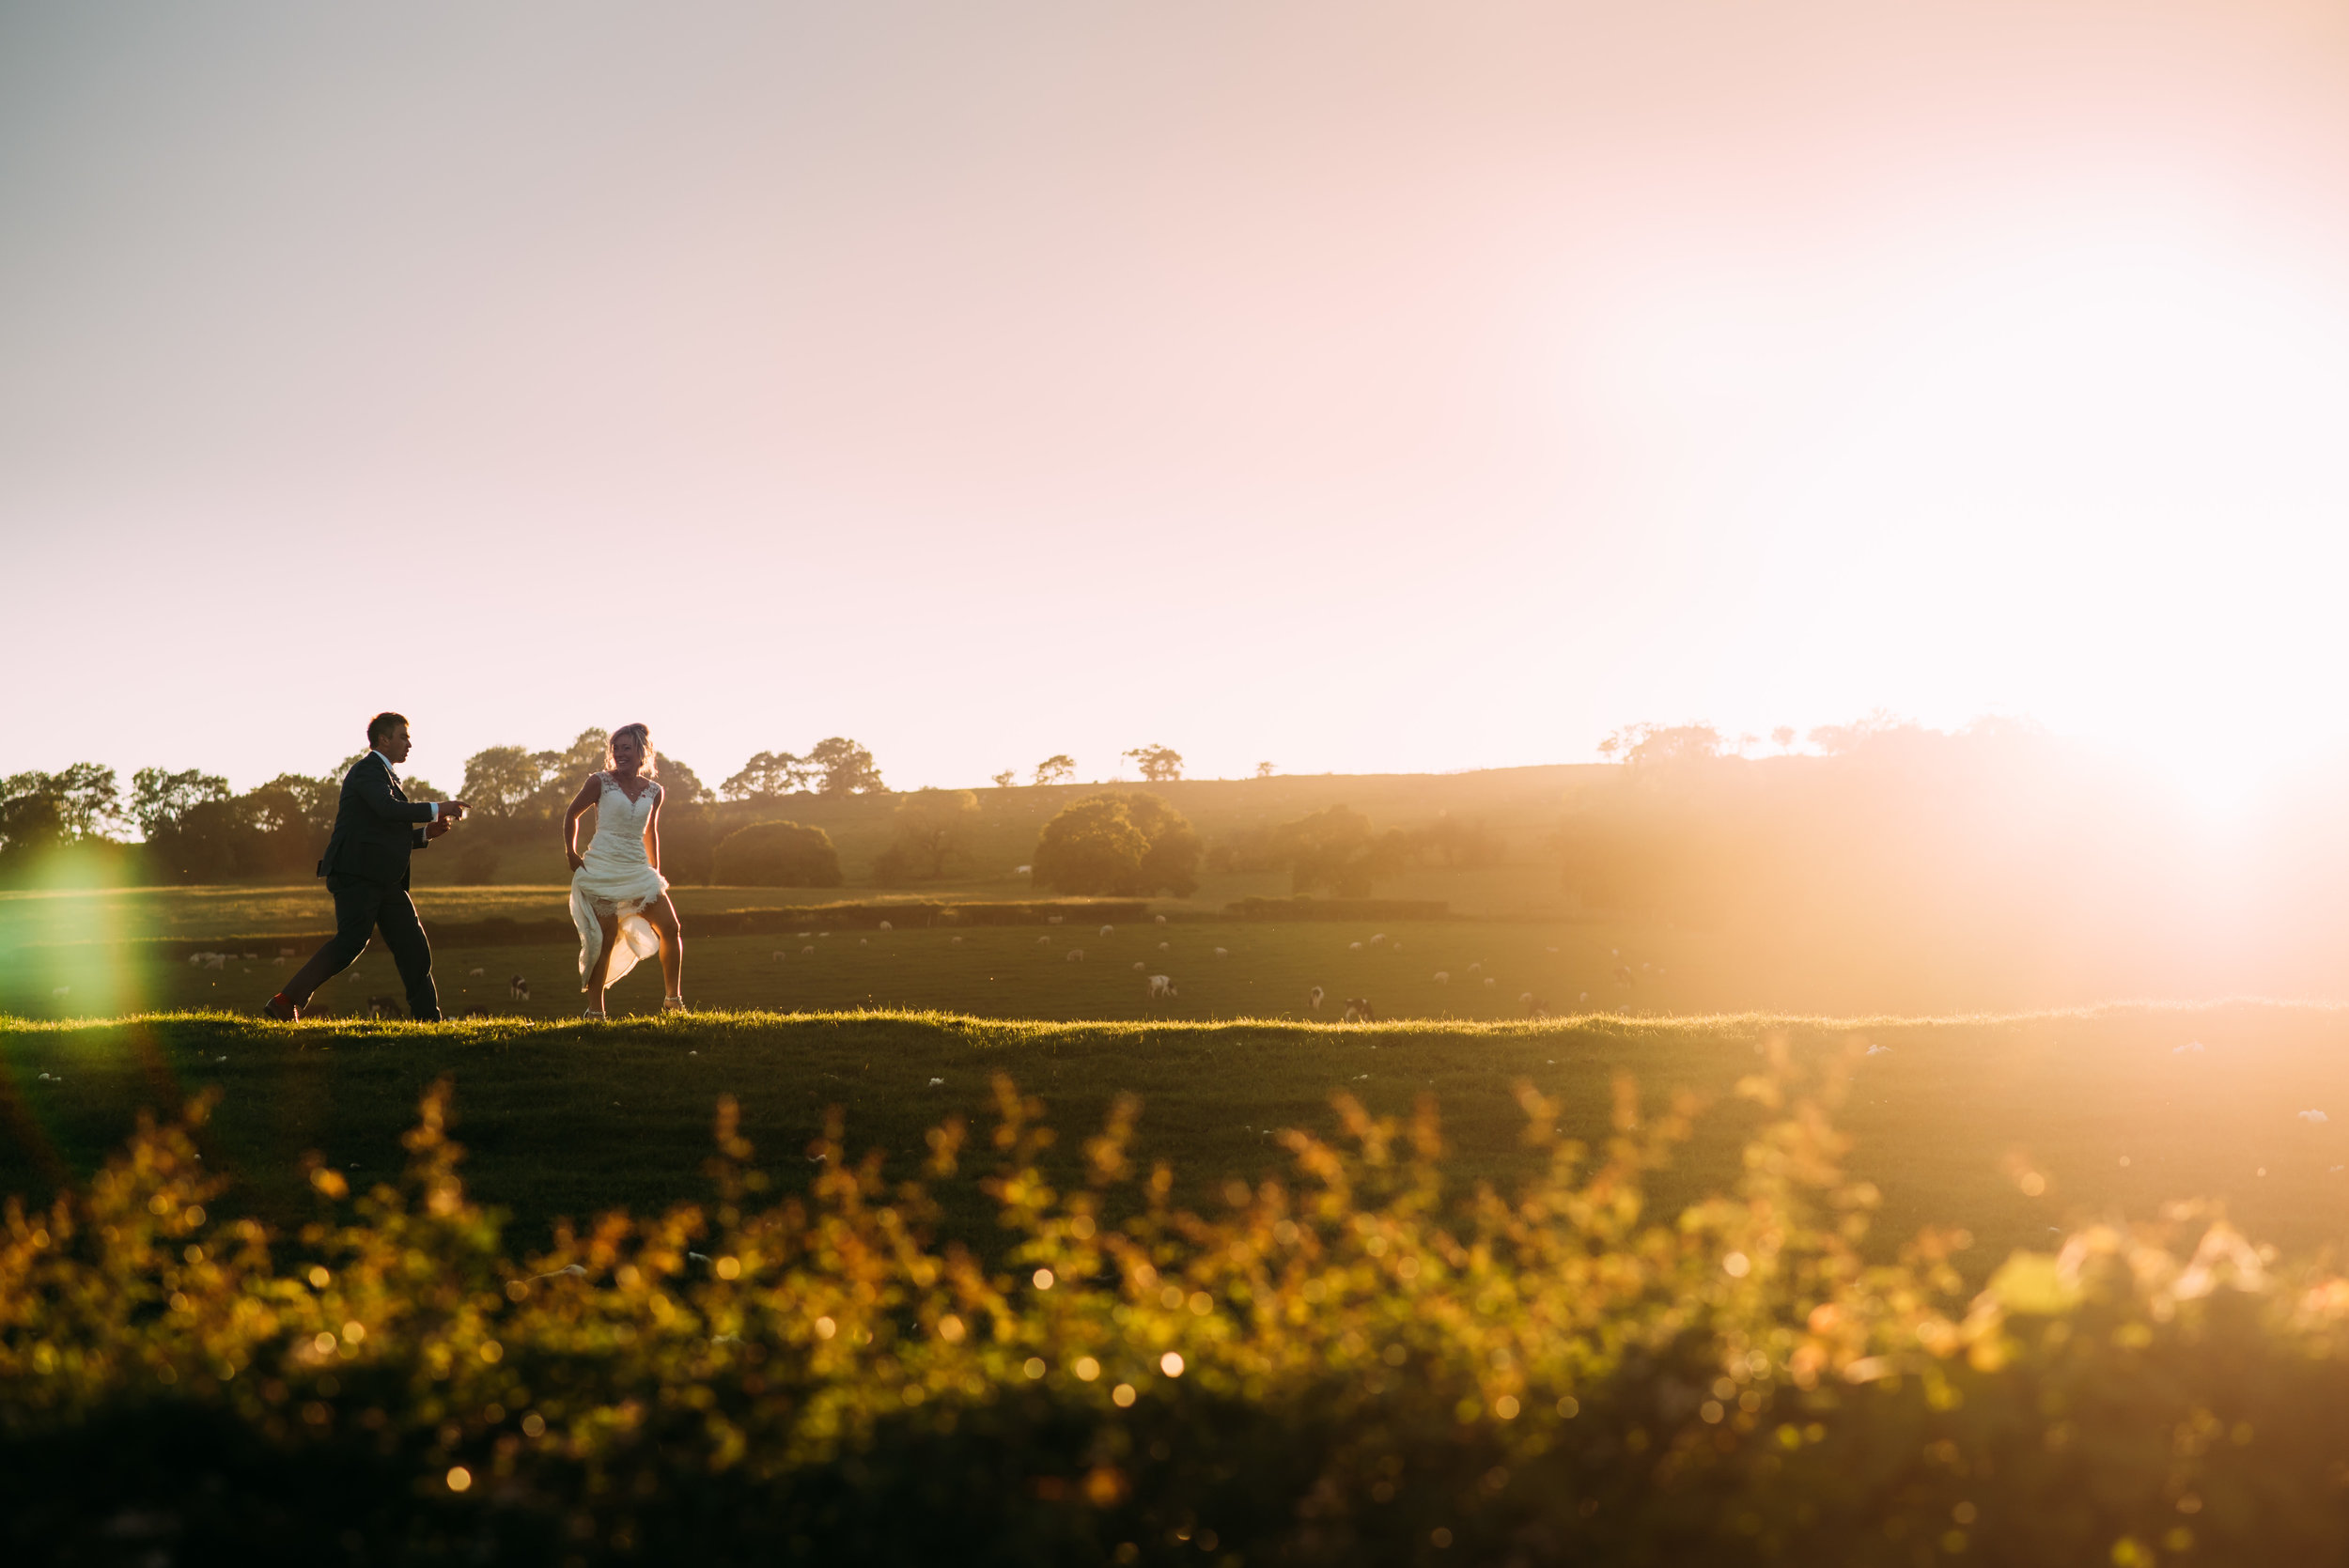 sunset photo of the bride and groom running up a hill in the distance